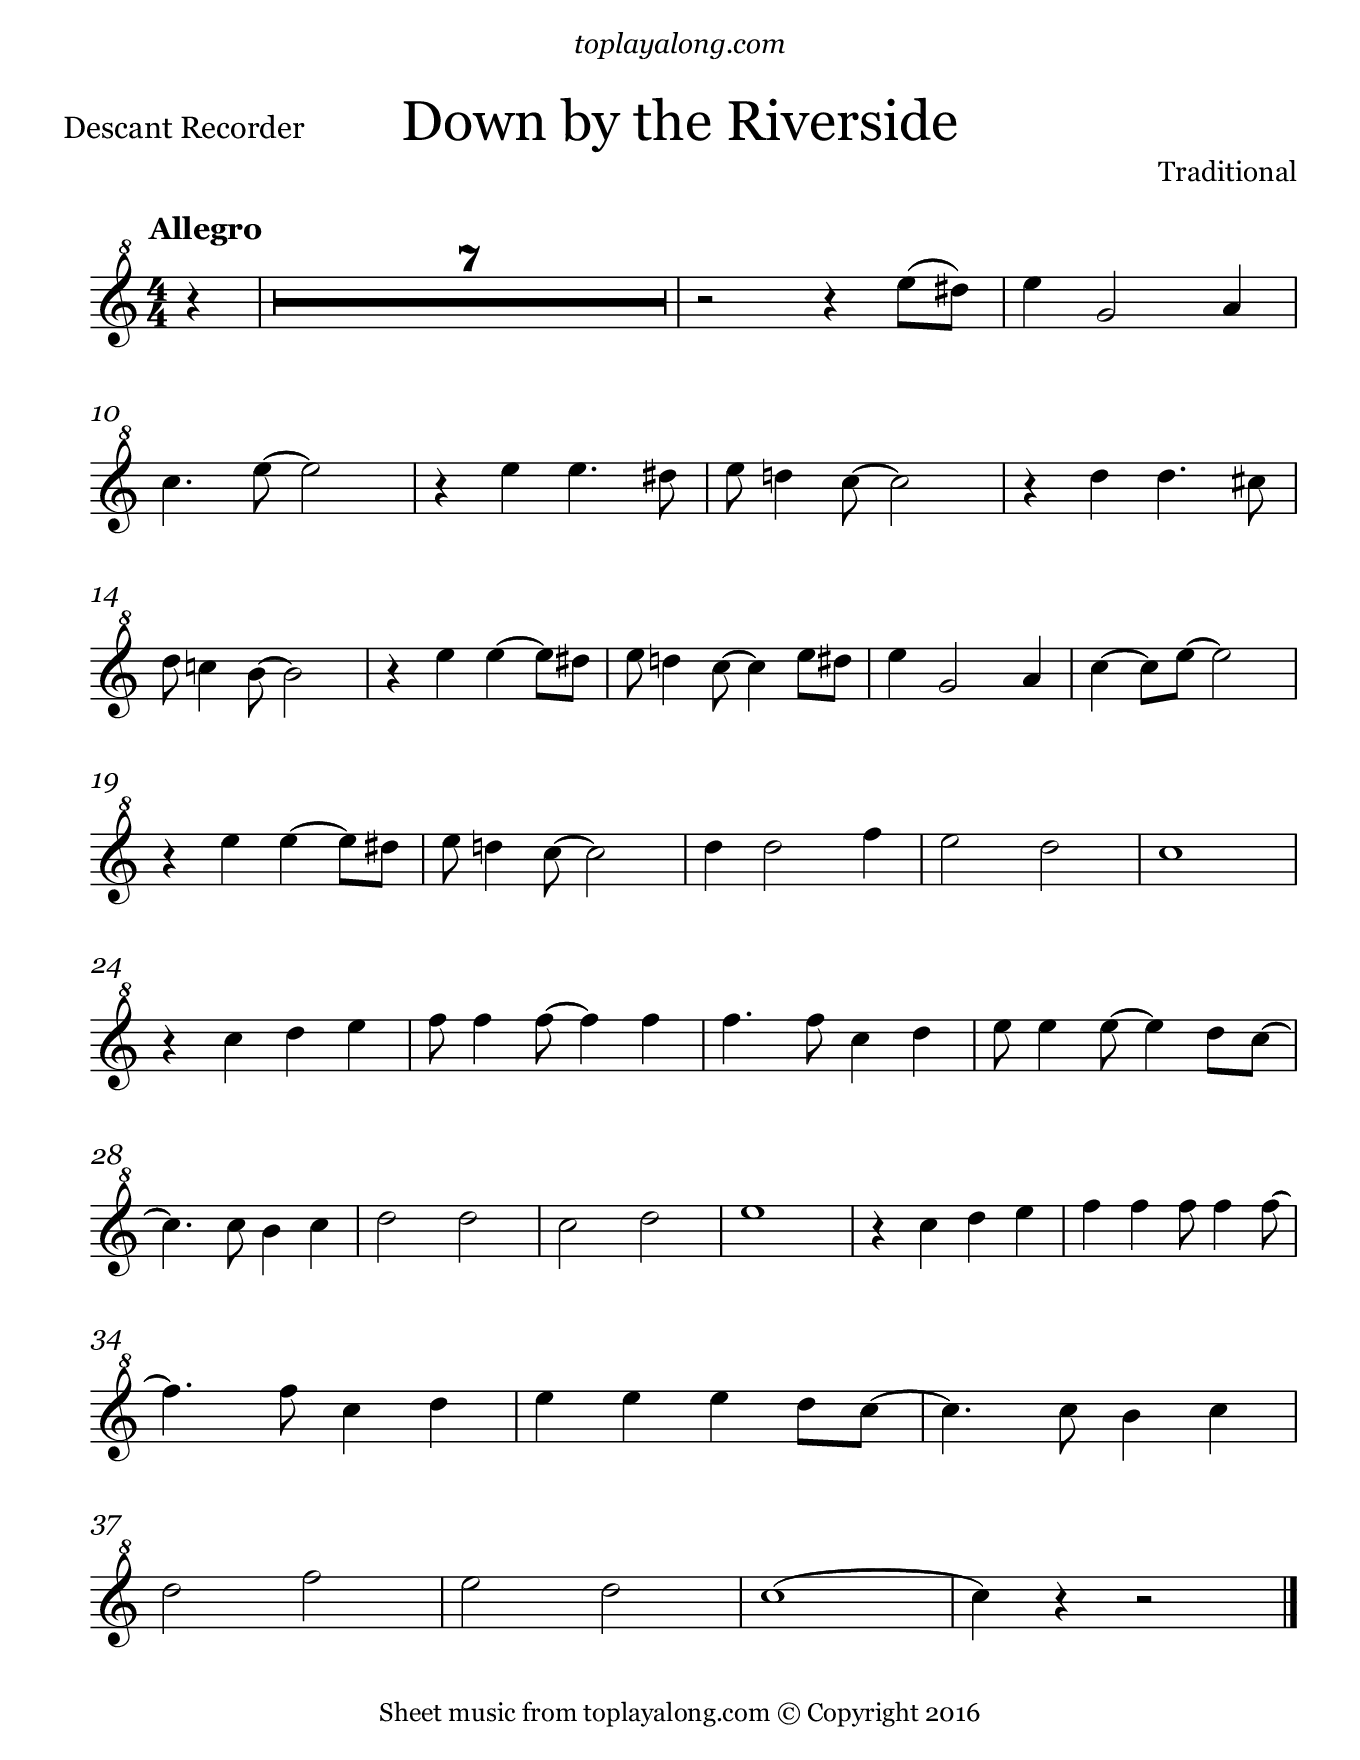 Down by the Riverside. Sheet music for Recorder, page 1.